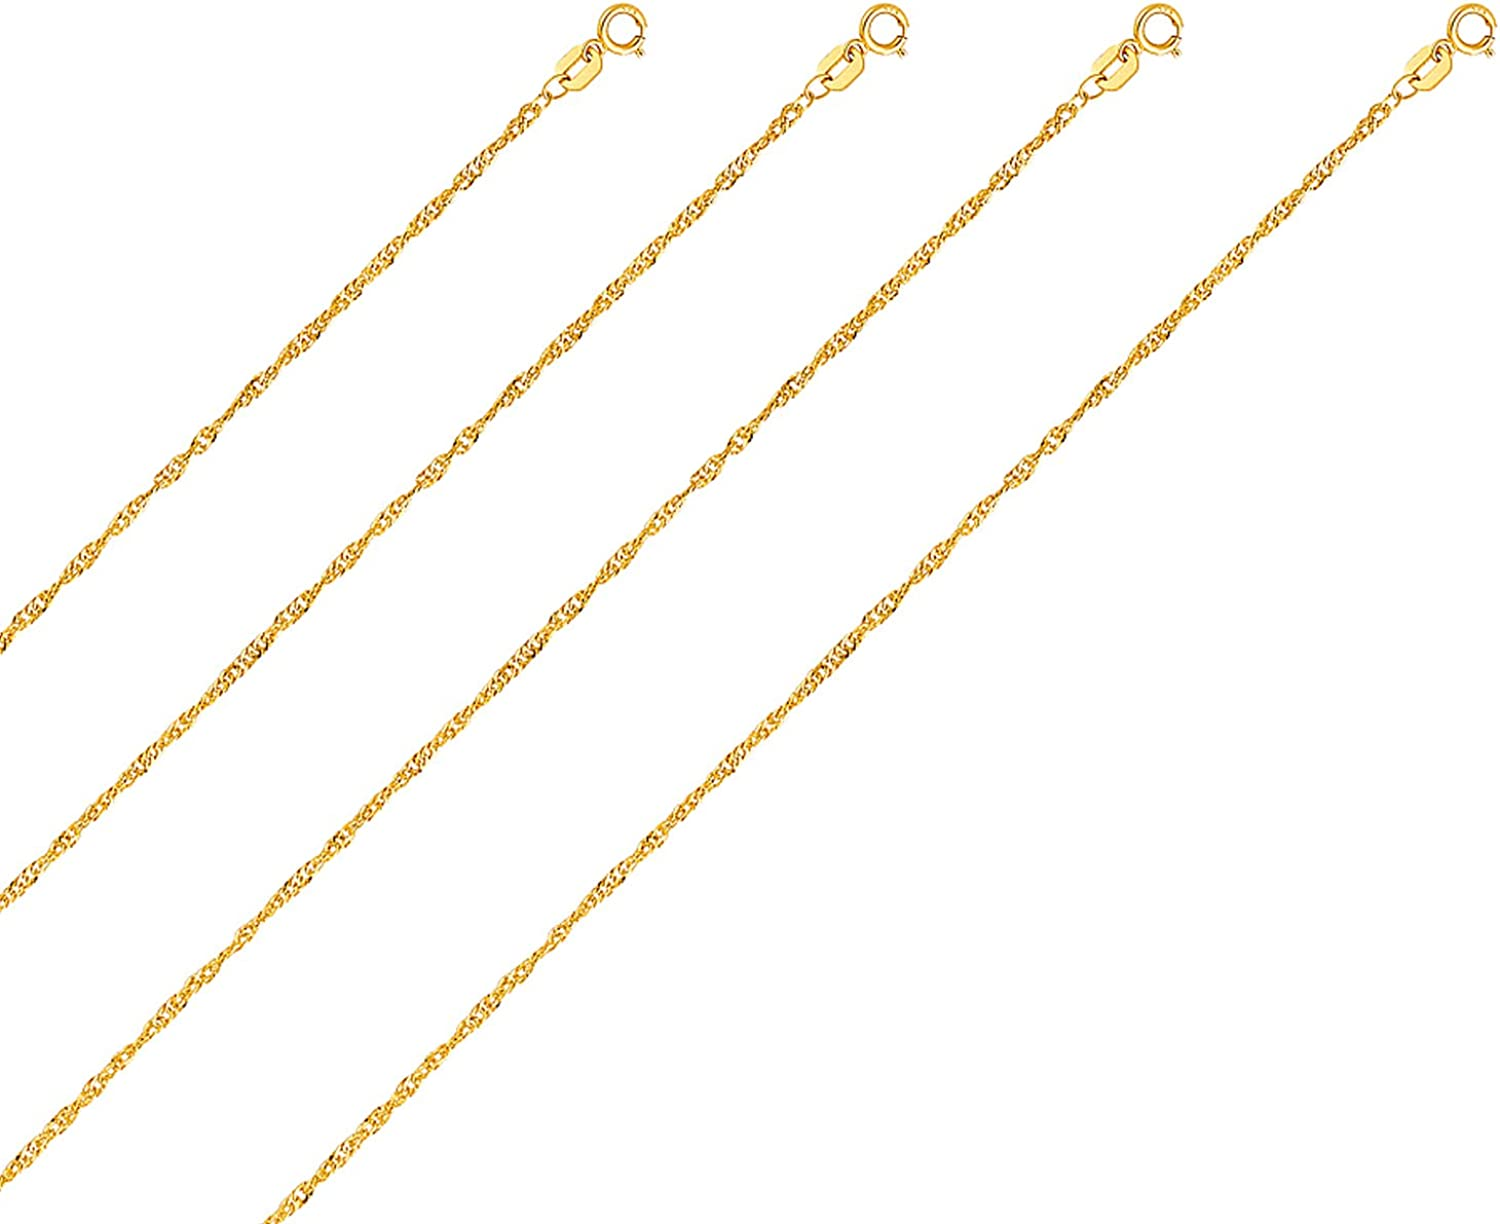 TGDJ 14k White//Yellow//Rose Gold 1.8mm Singapore Chain Necklace with Spring Ring Clasp